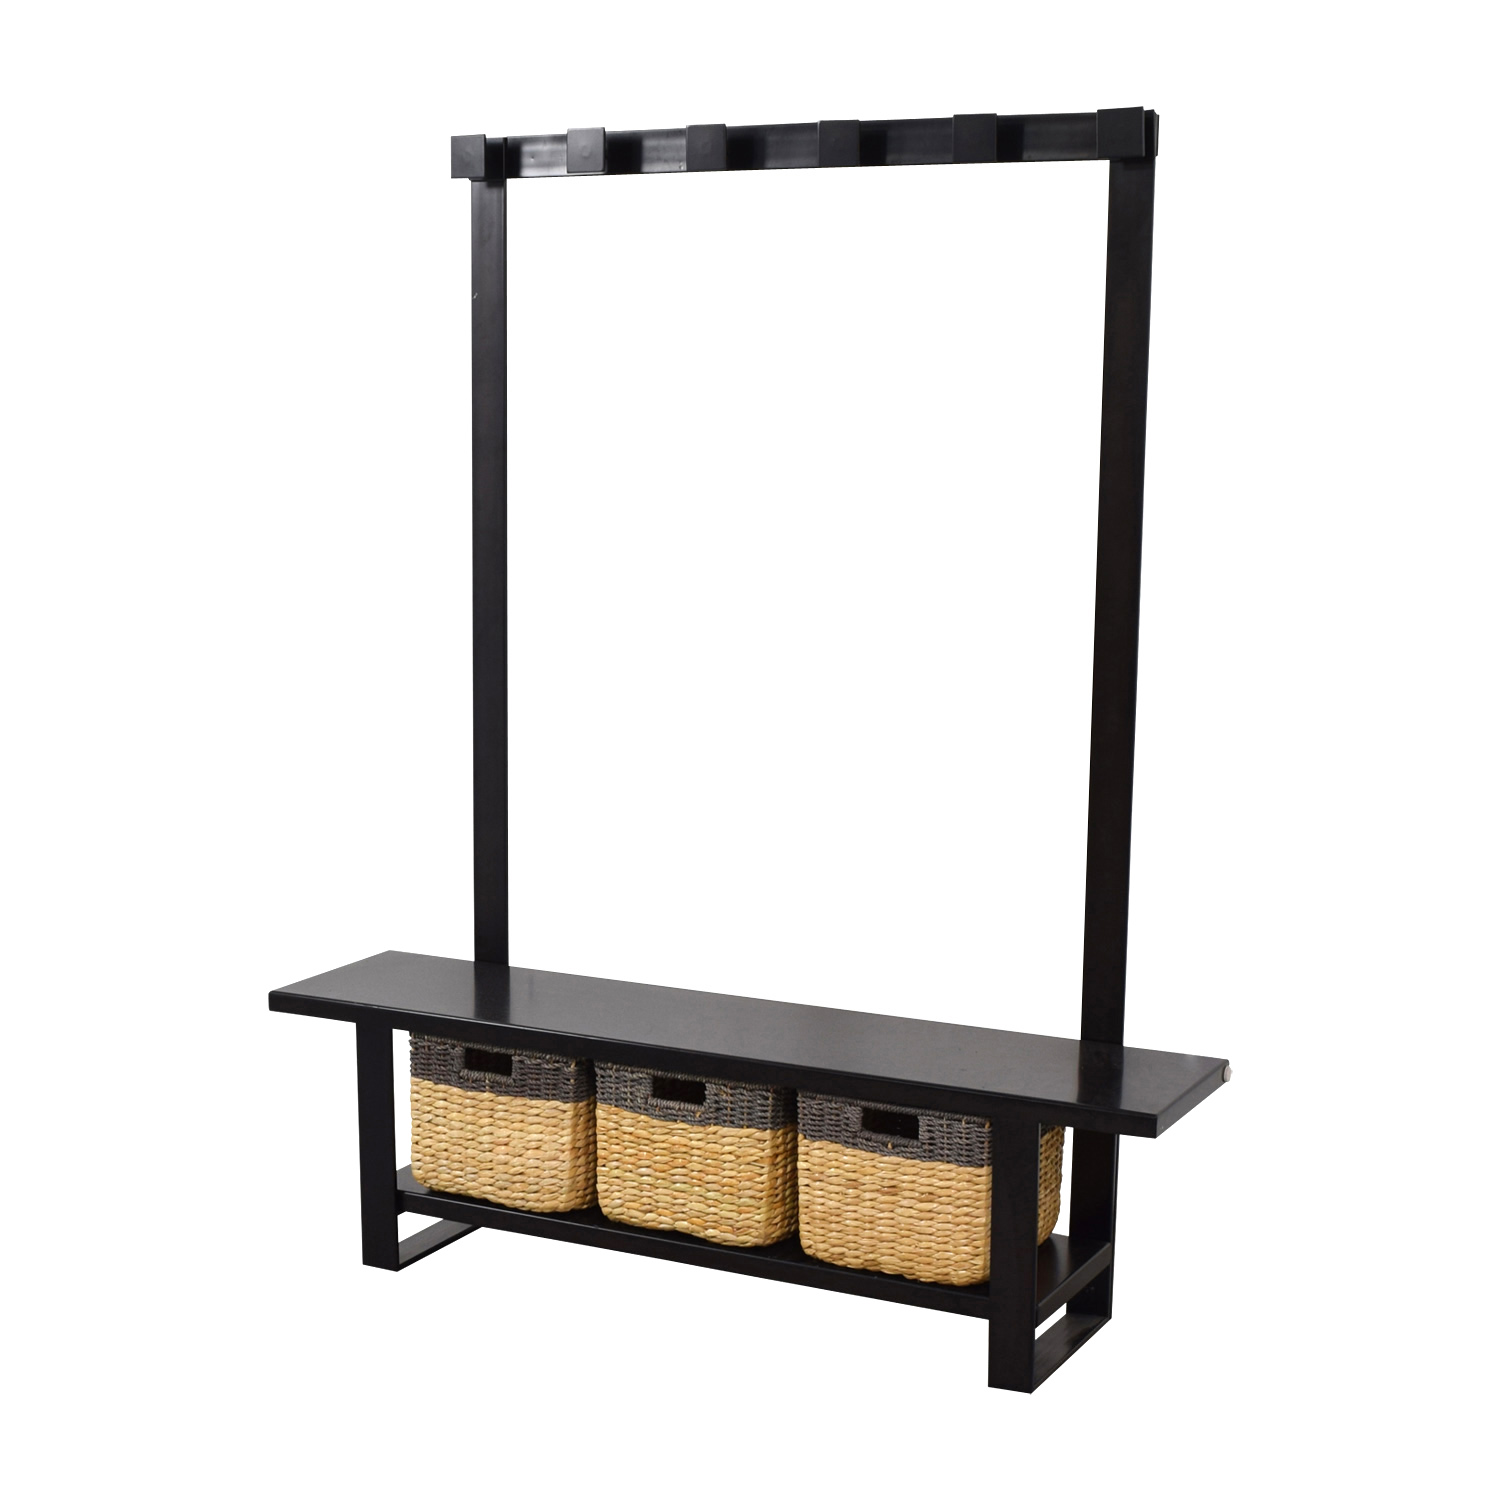 Crate & Barrel Crate & Barrel Black Coat Rack with Bench and Storage Decorative Accents